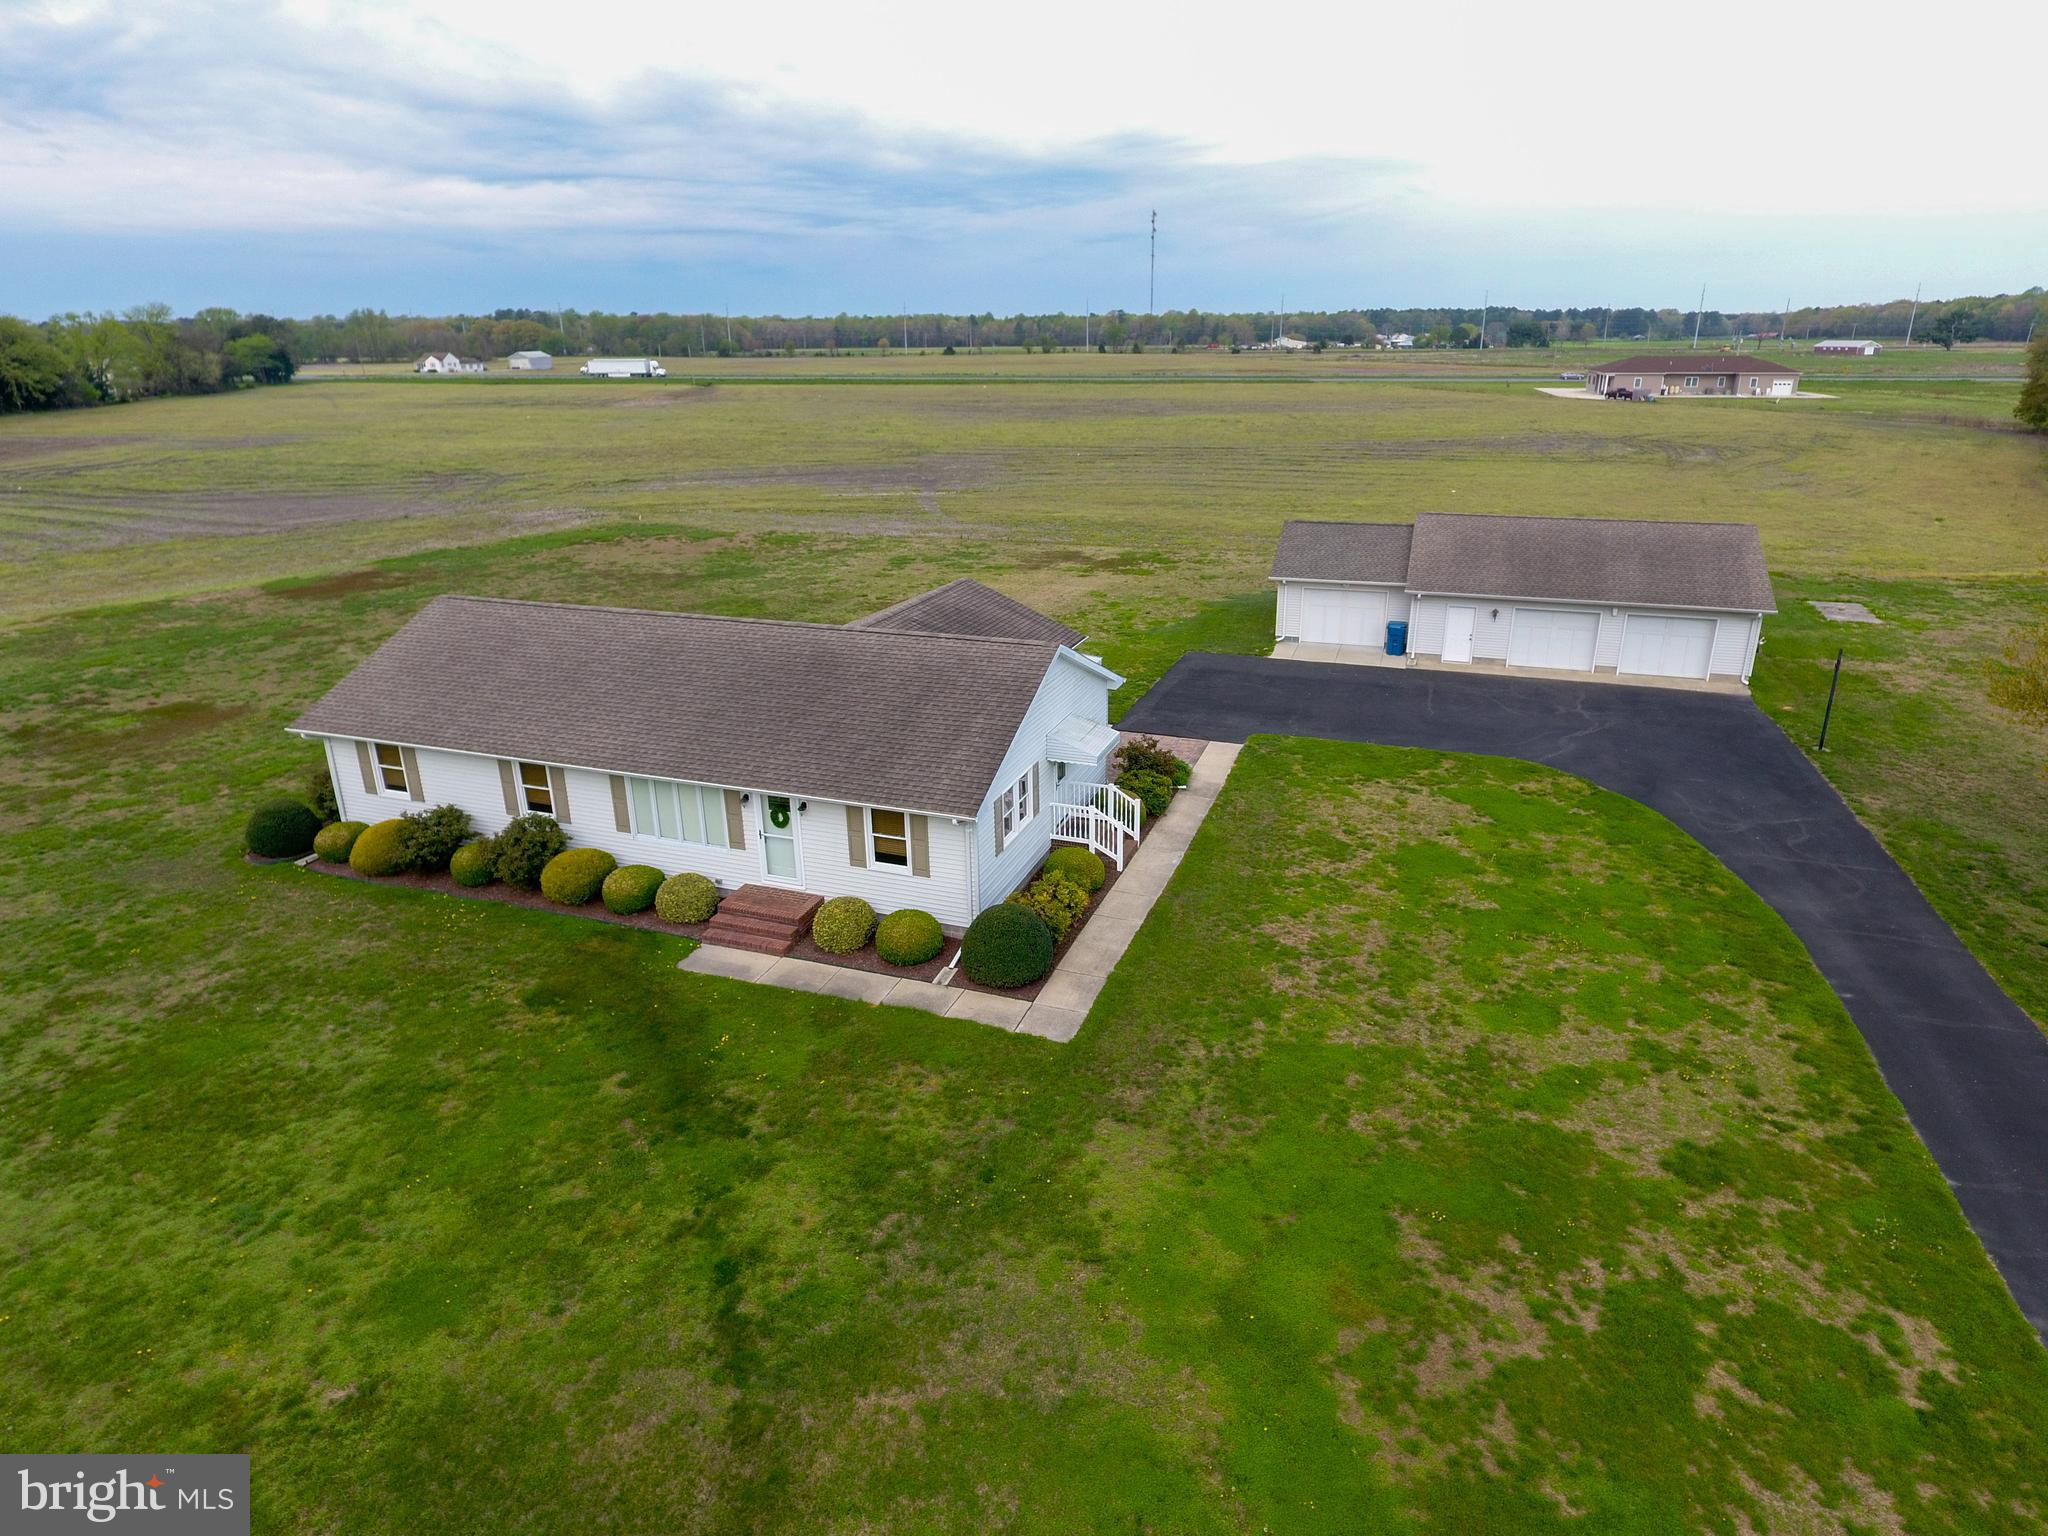 Beautifully maintained one story rancher on a level two acre lot!  Pride shows throughout this home.  Home has a nice sized family and living room to enjoy.  Laundry/Mud room right when entering from the side door.   Owner's bedroom has it's own bathroom with shower.   Owner combined two bedrooms into one large bedroom with numerous possibilities.  Back of the house has a  14 x 20 sun room! Outside the sunroom is a brick paver patio to enjoy in the mornings and evenings.  You will love the three bay oversized garage with workbench and ceiling fans!  All three bays have electric door openers.     Come check out this beautiful home! Septic system failed and seller is in the process of obtaining permits and replacing the system. Furniture in home is available for sale on a separate bill of sale.   Dining room set, trunk in large bedroom not for sale, and trailer in garage are not for sale.